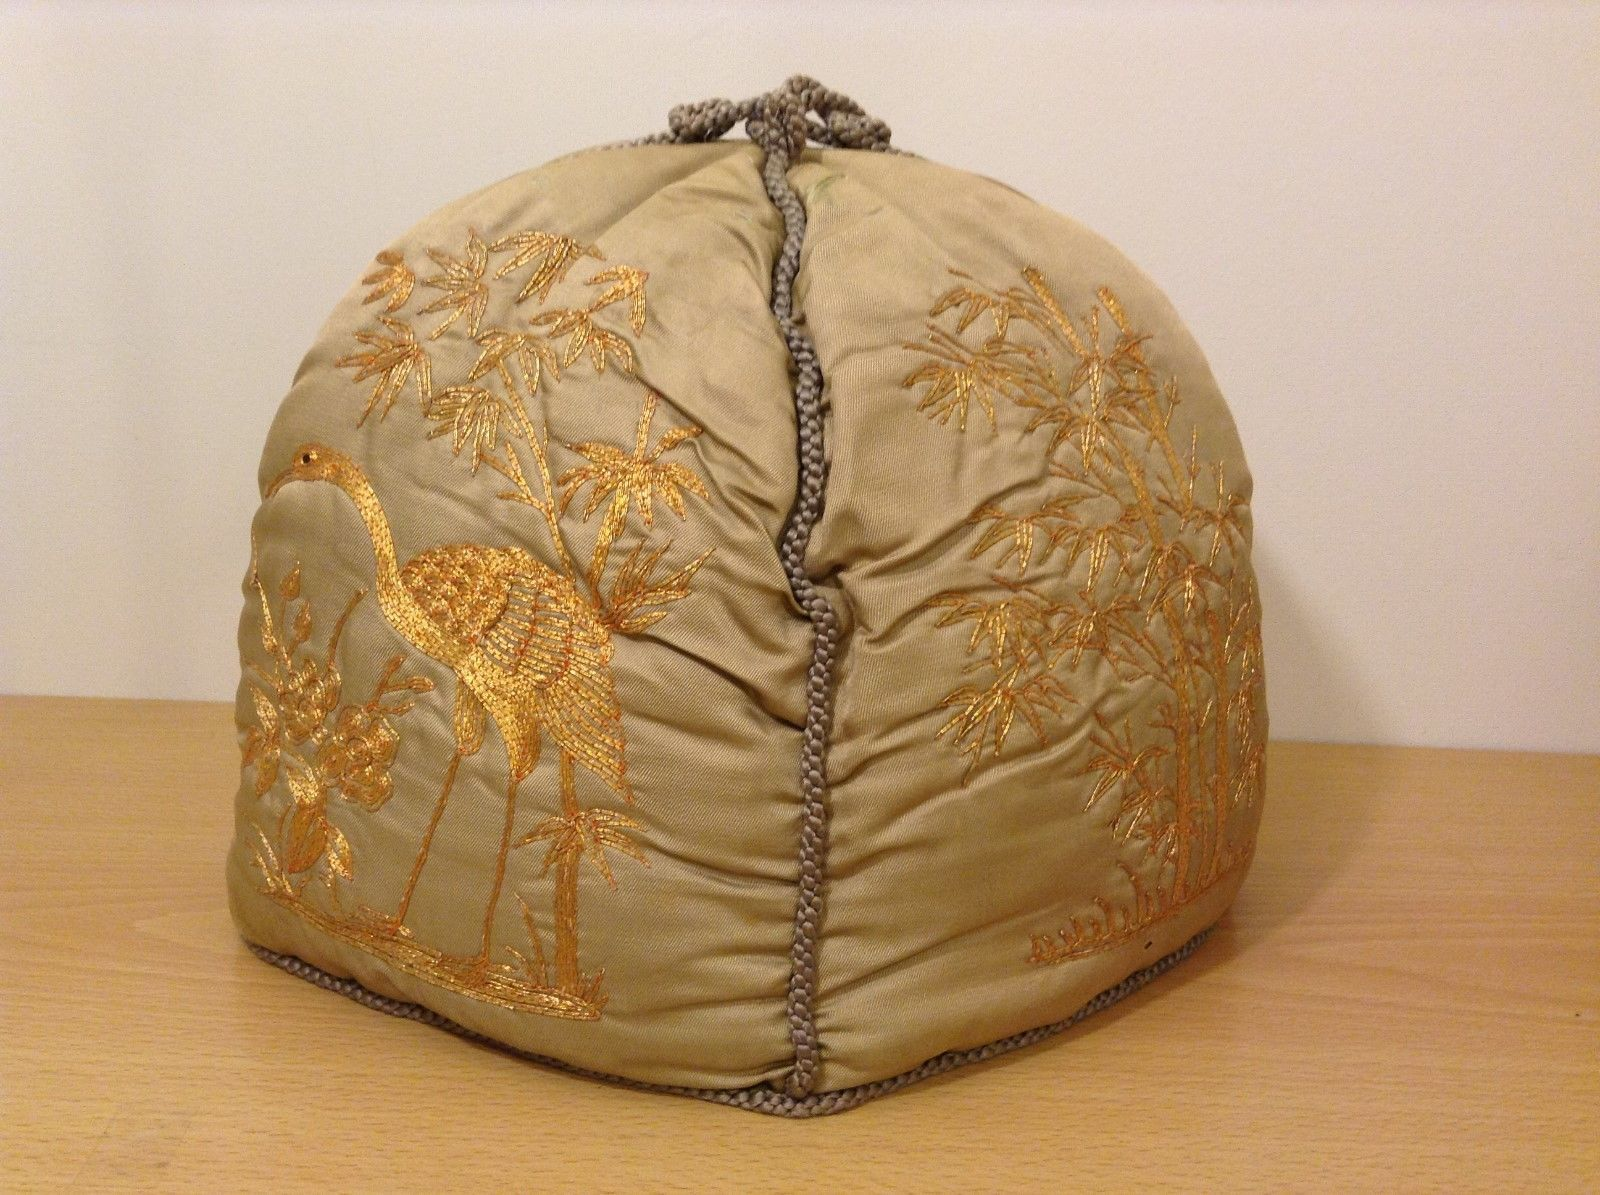 Handmade Vintage Chinese style Collectible Embroidered Tan Teapot Cover